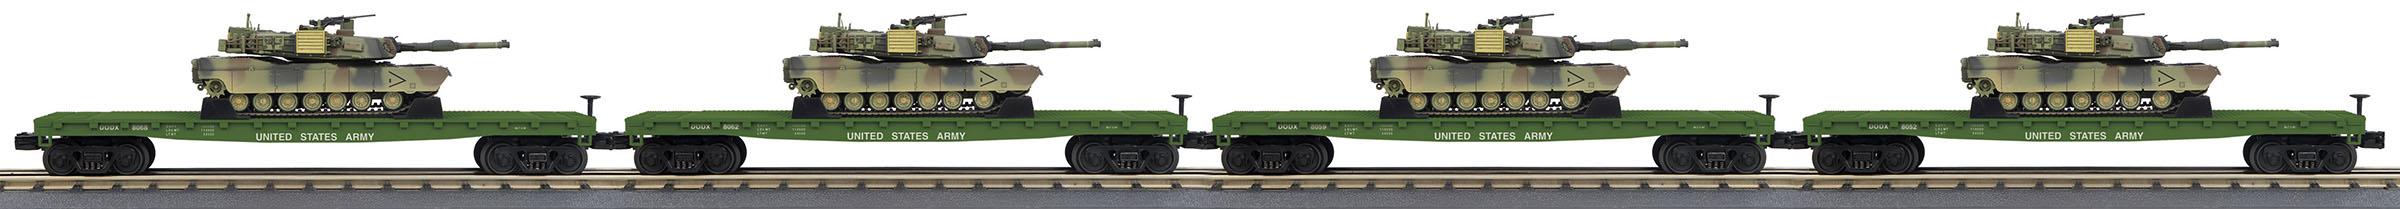 TrainMaster Model Trains | Discount Model Trains | Free